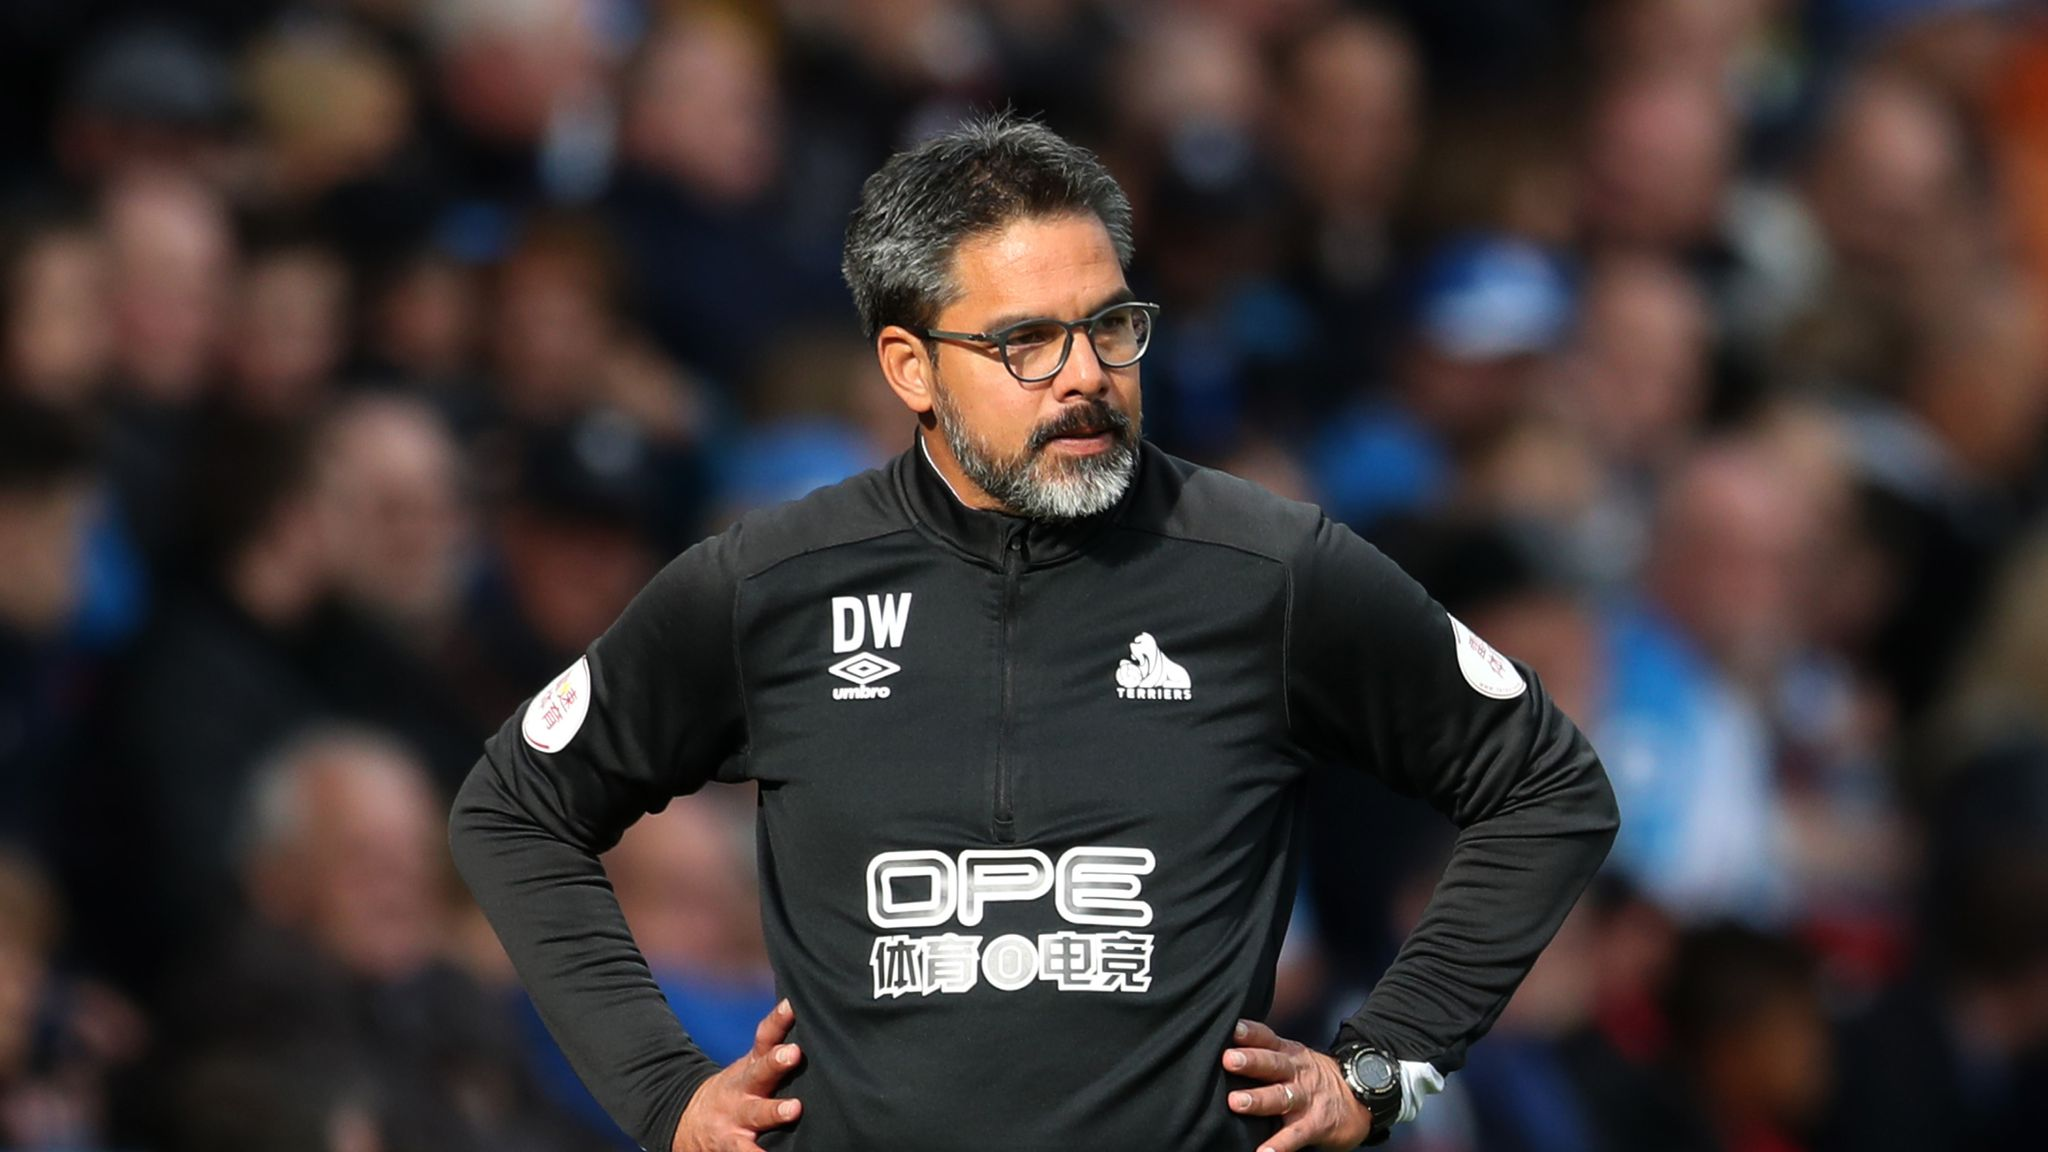 Huddersfield Boss David Wagner Receives Apology From Age Hareide